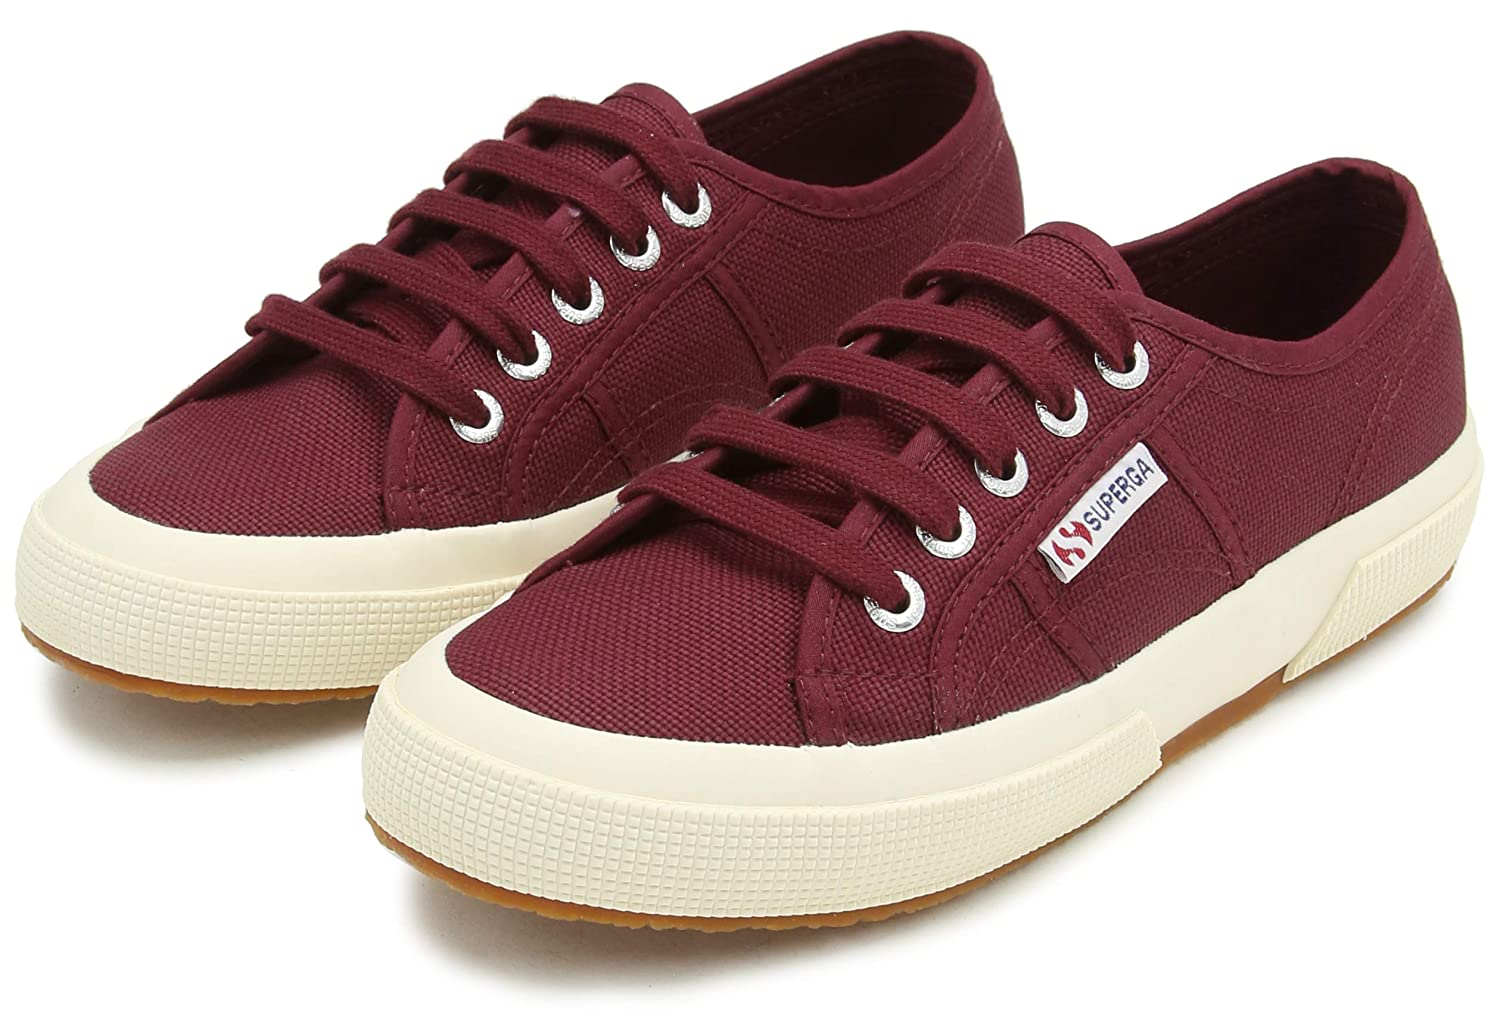 Superga 2750 Adulte Baskets Mixte Classic cotu 8YqUwr8